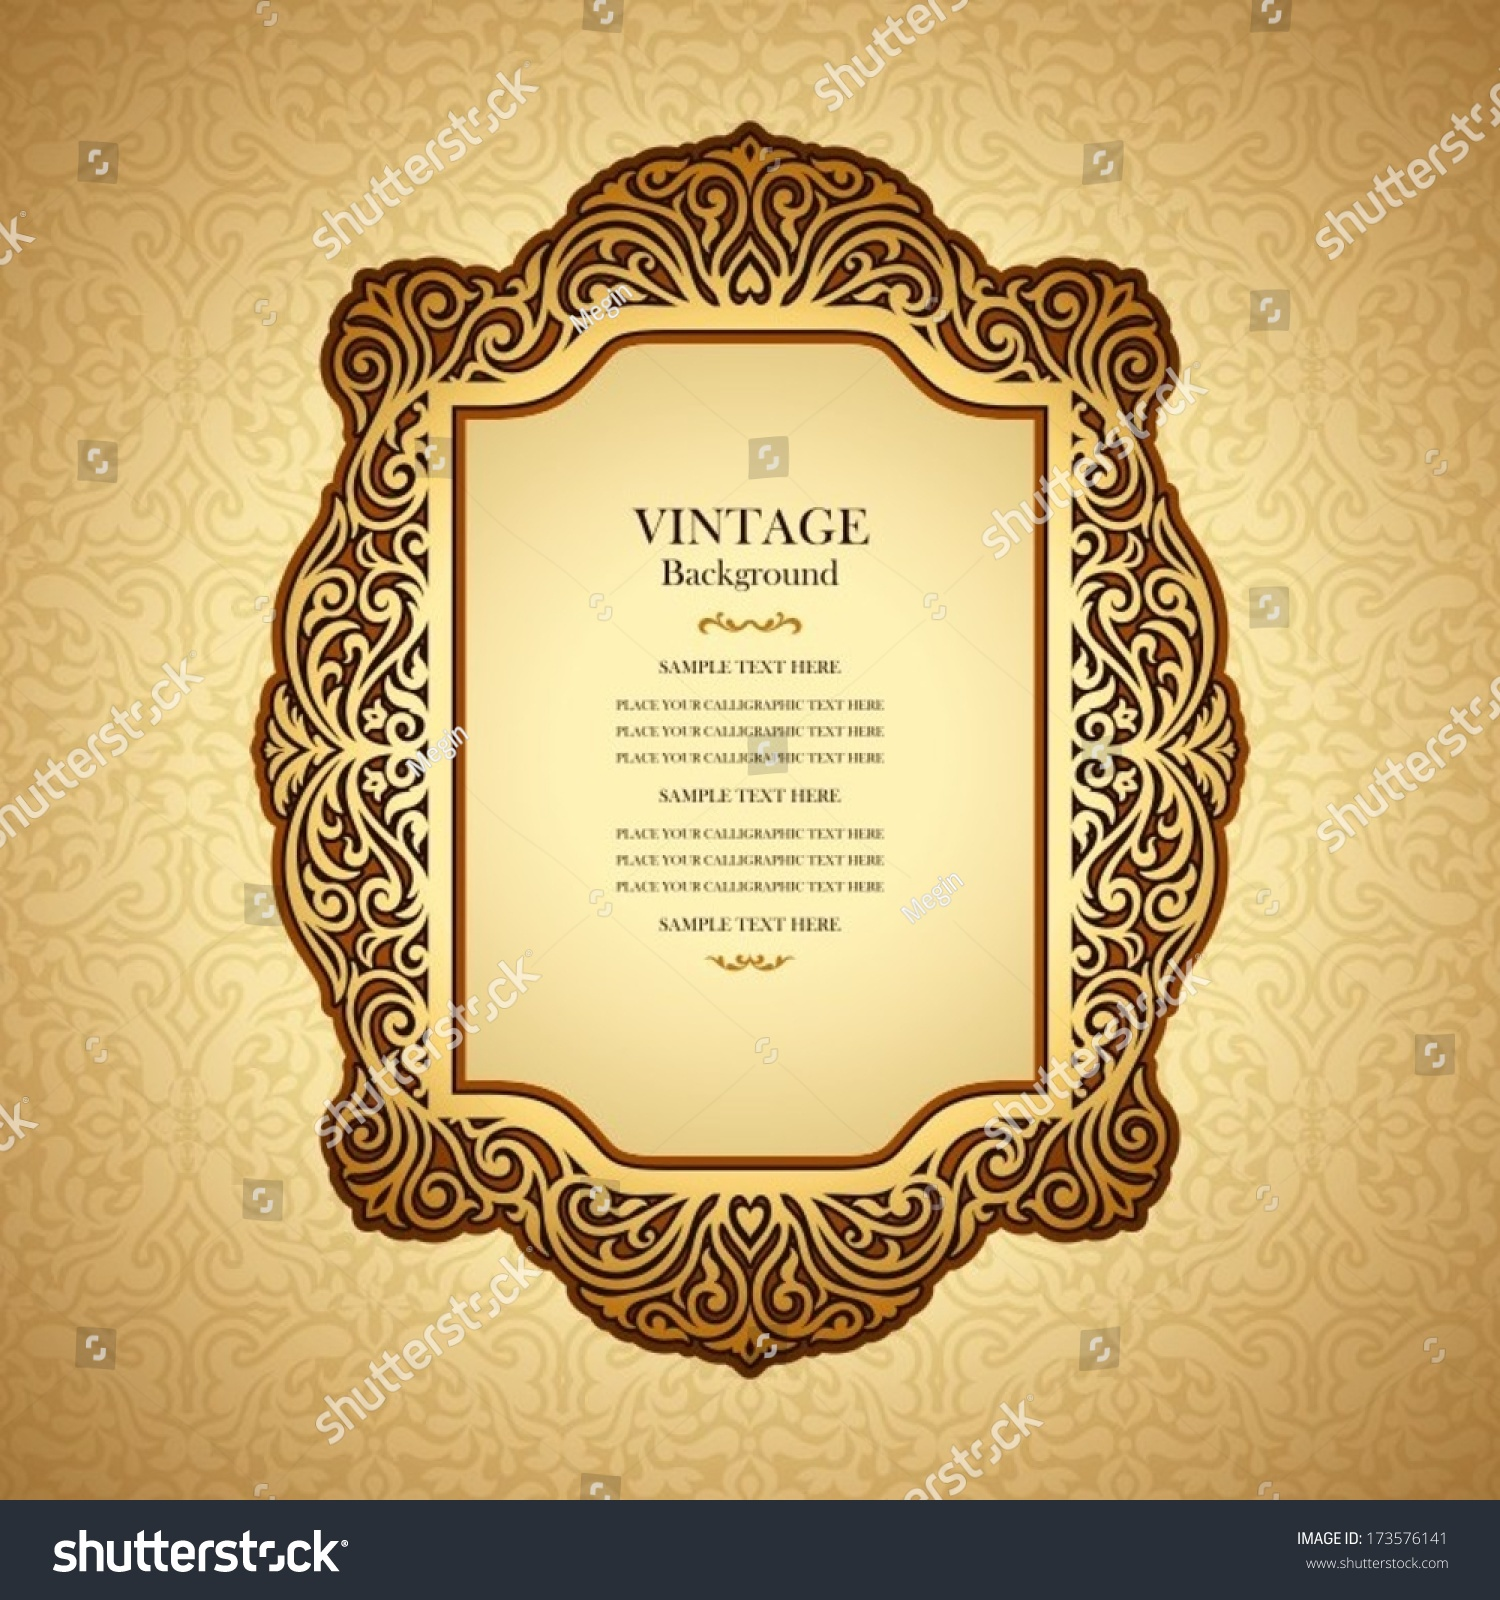 Book Cover Design Elegant : Vintage background design elegant book cover stock vector